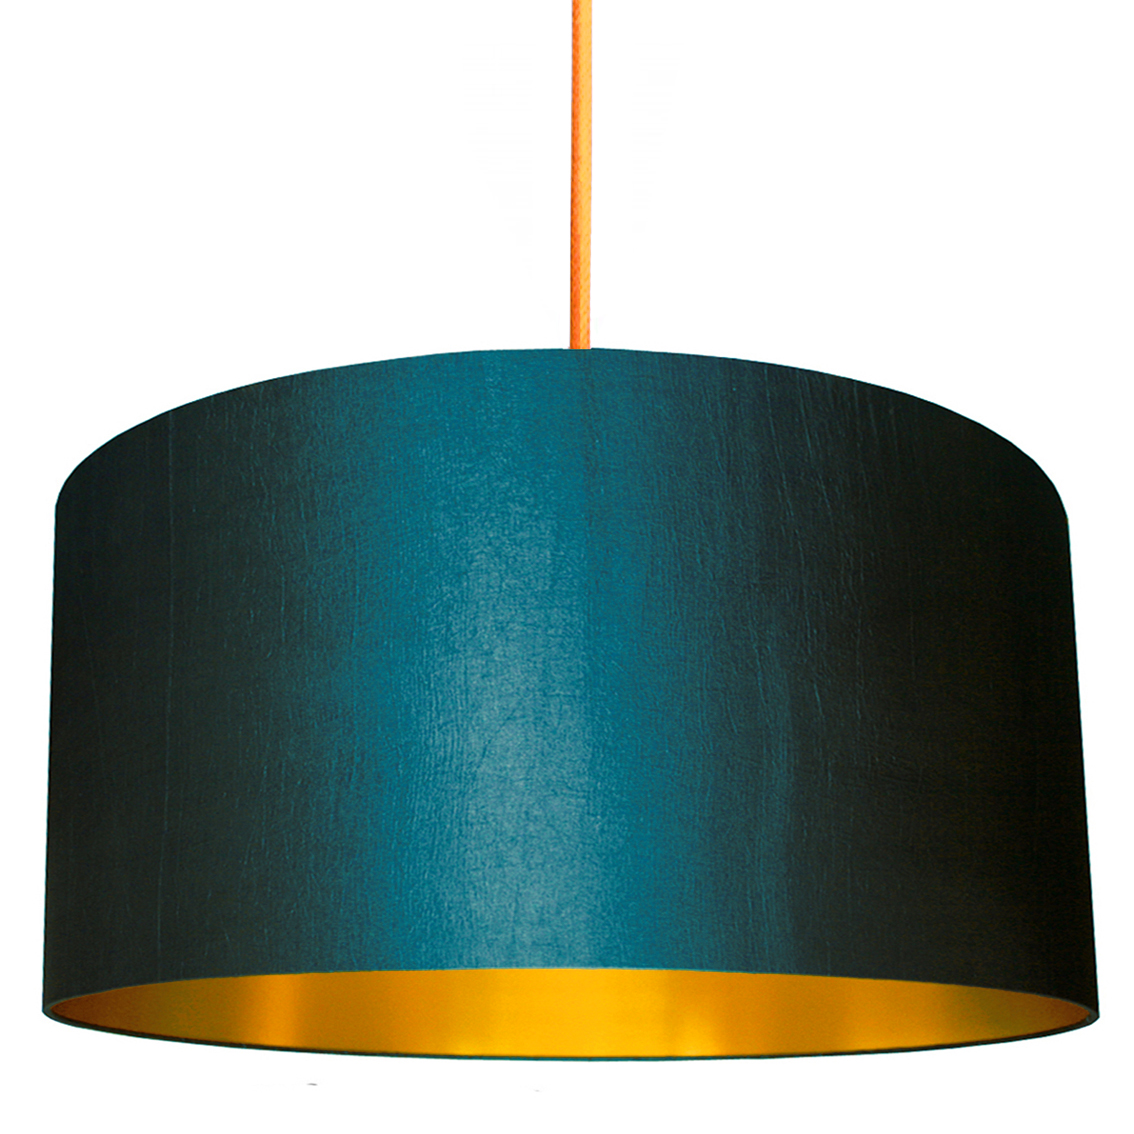 Petrol lampshade with gold lining love frankie petrol blue lamp shade with gold lining designed by love frankie creative lighting interiors aloadofball Image collections